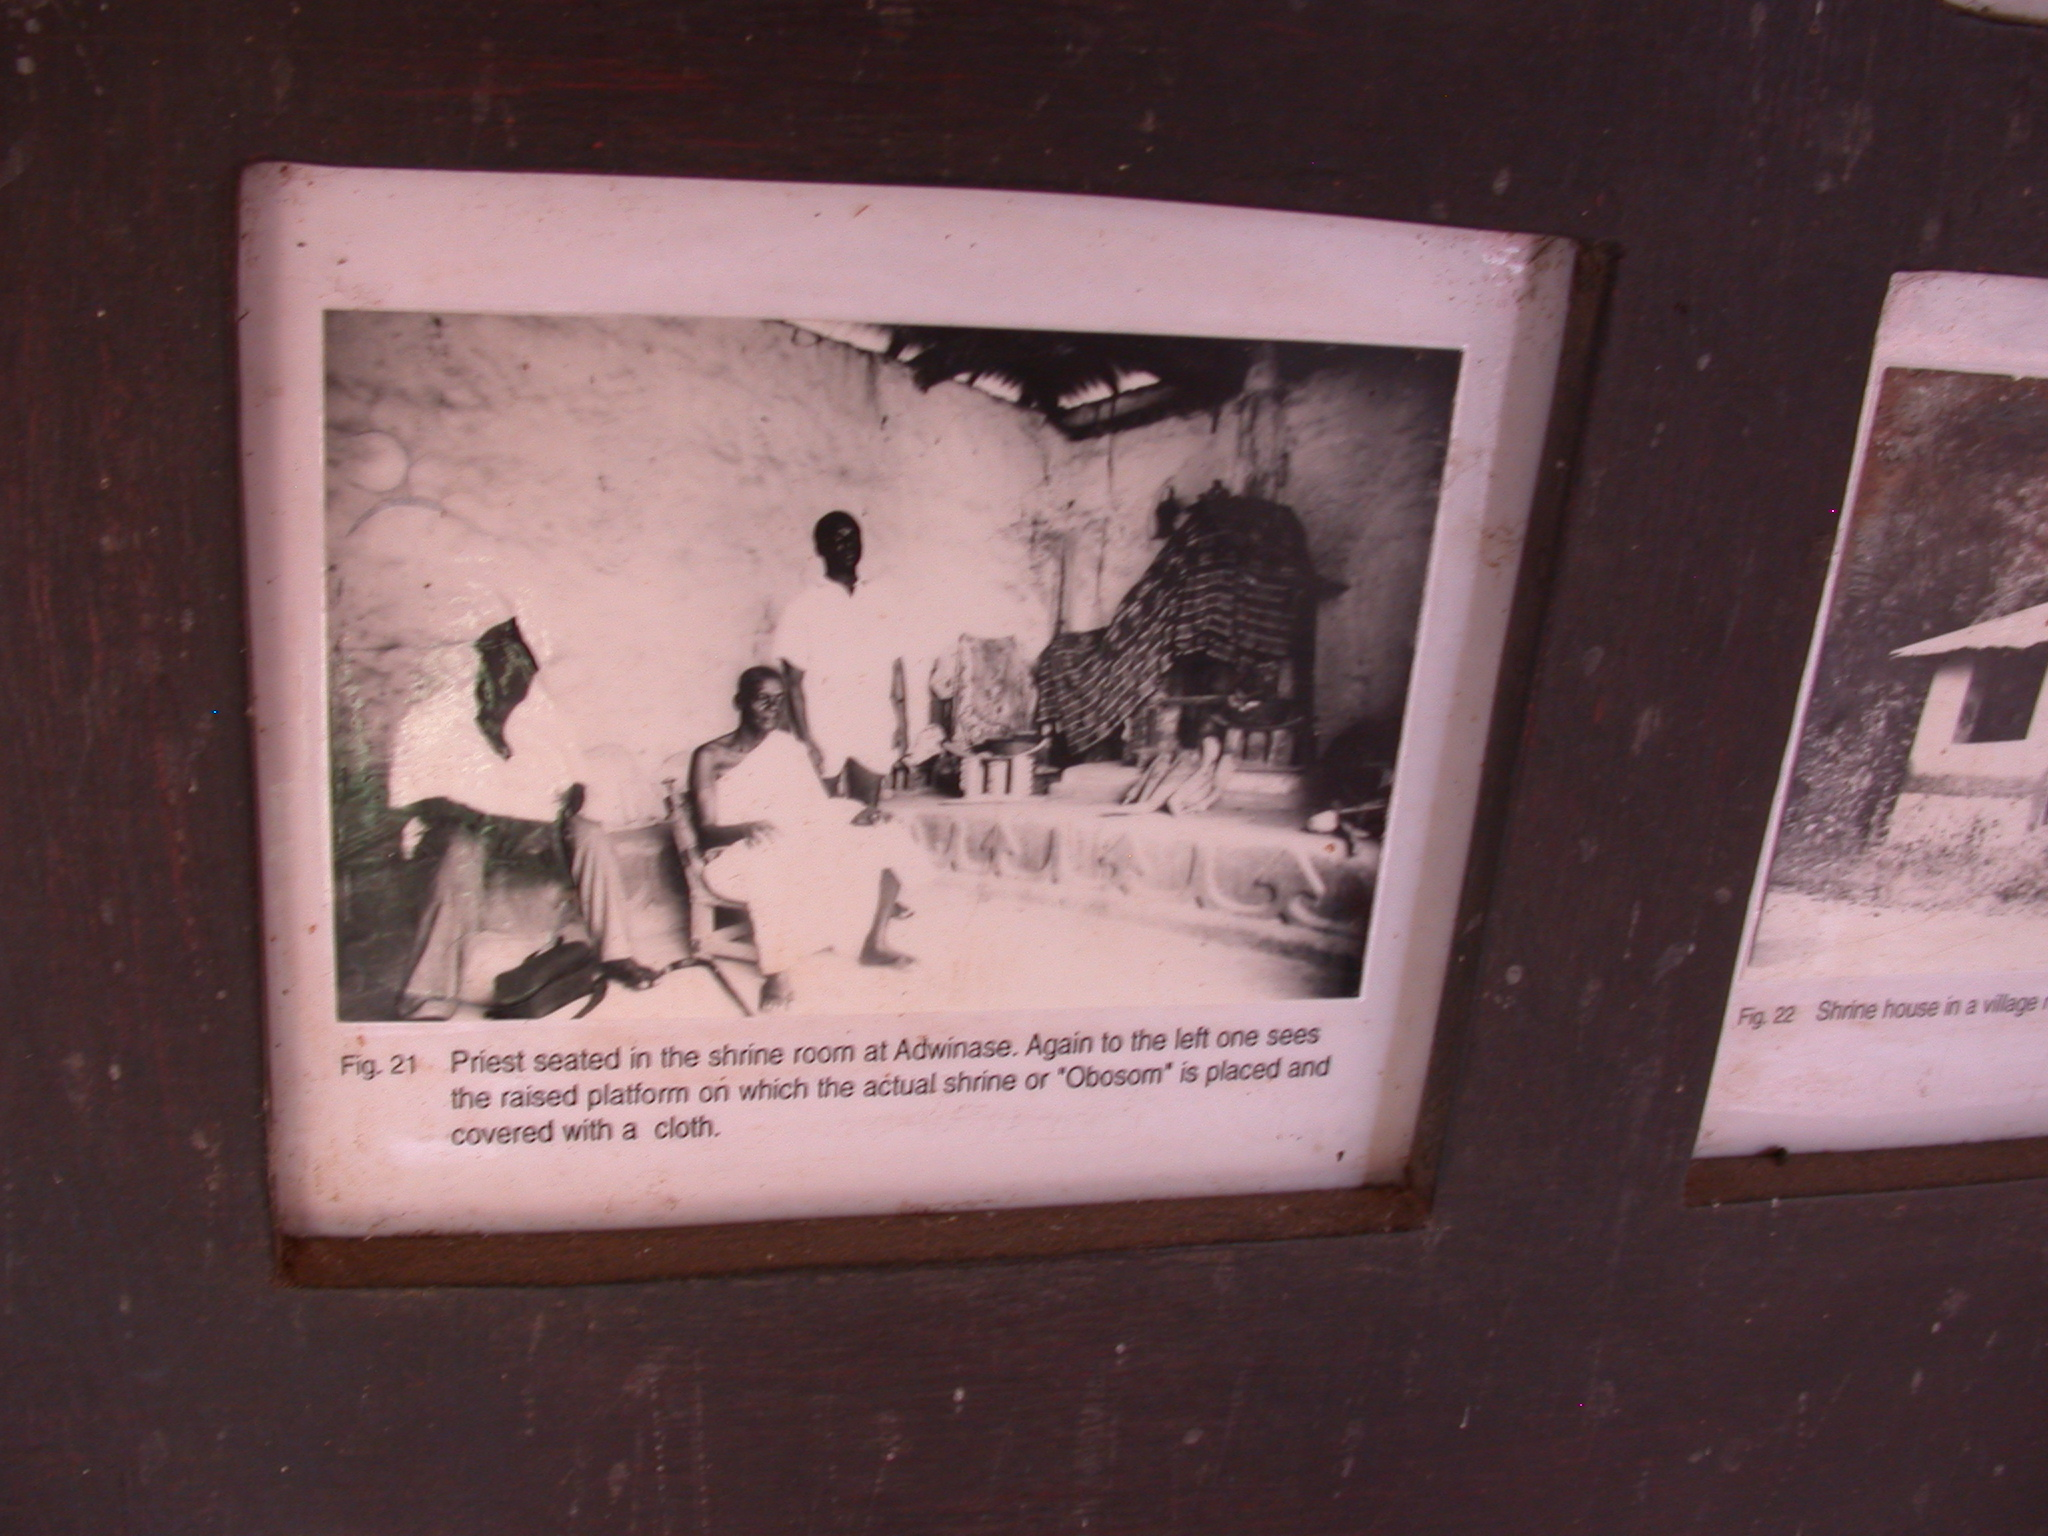 Photograph of Priest Seated in Shrine Room at Adwinase Shrine House With Obosom Shrine Covered by Cloth on Raised Platform, Asante Traditional Shrine at Ejisu-Besease, Ghana